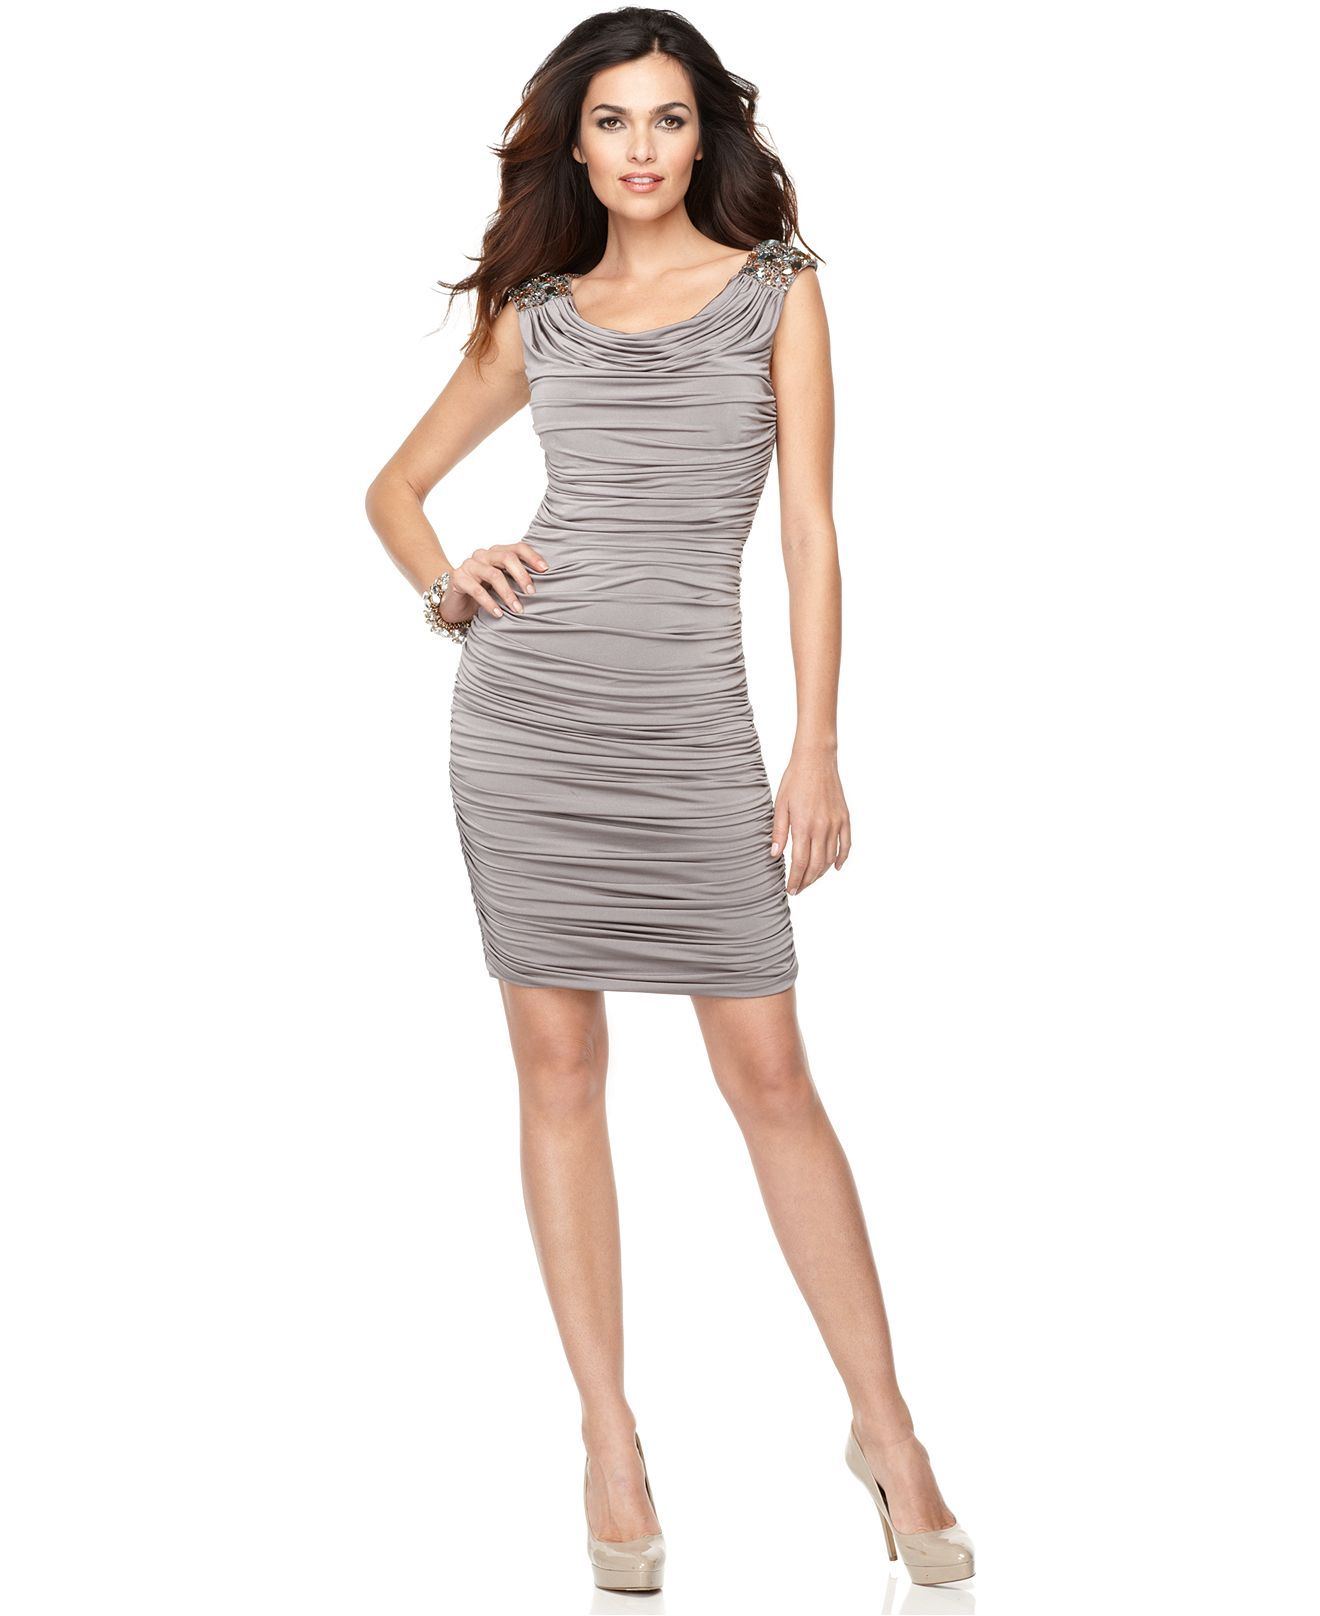 Js boutique macyus love this for mob rehearsal dinner dress